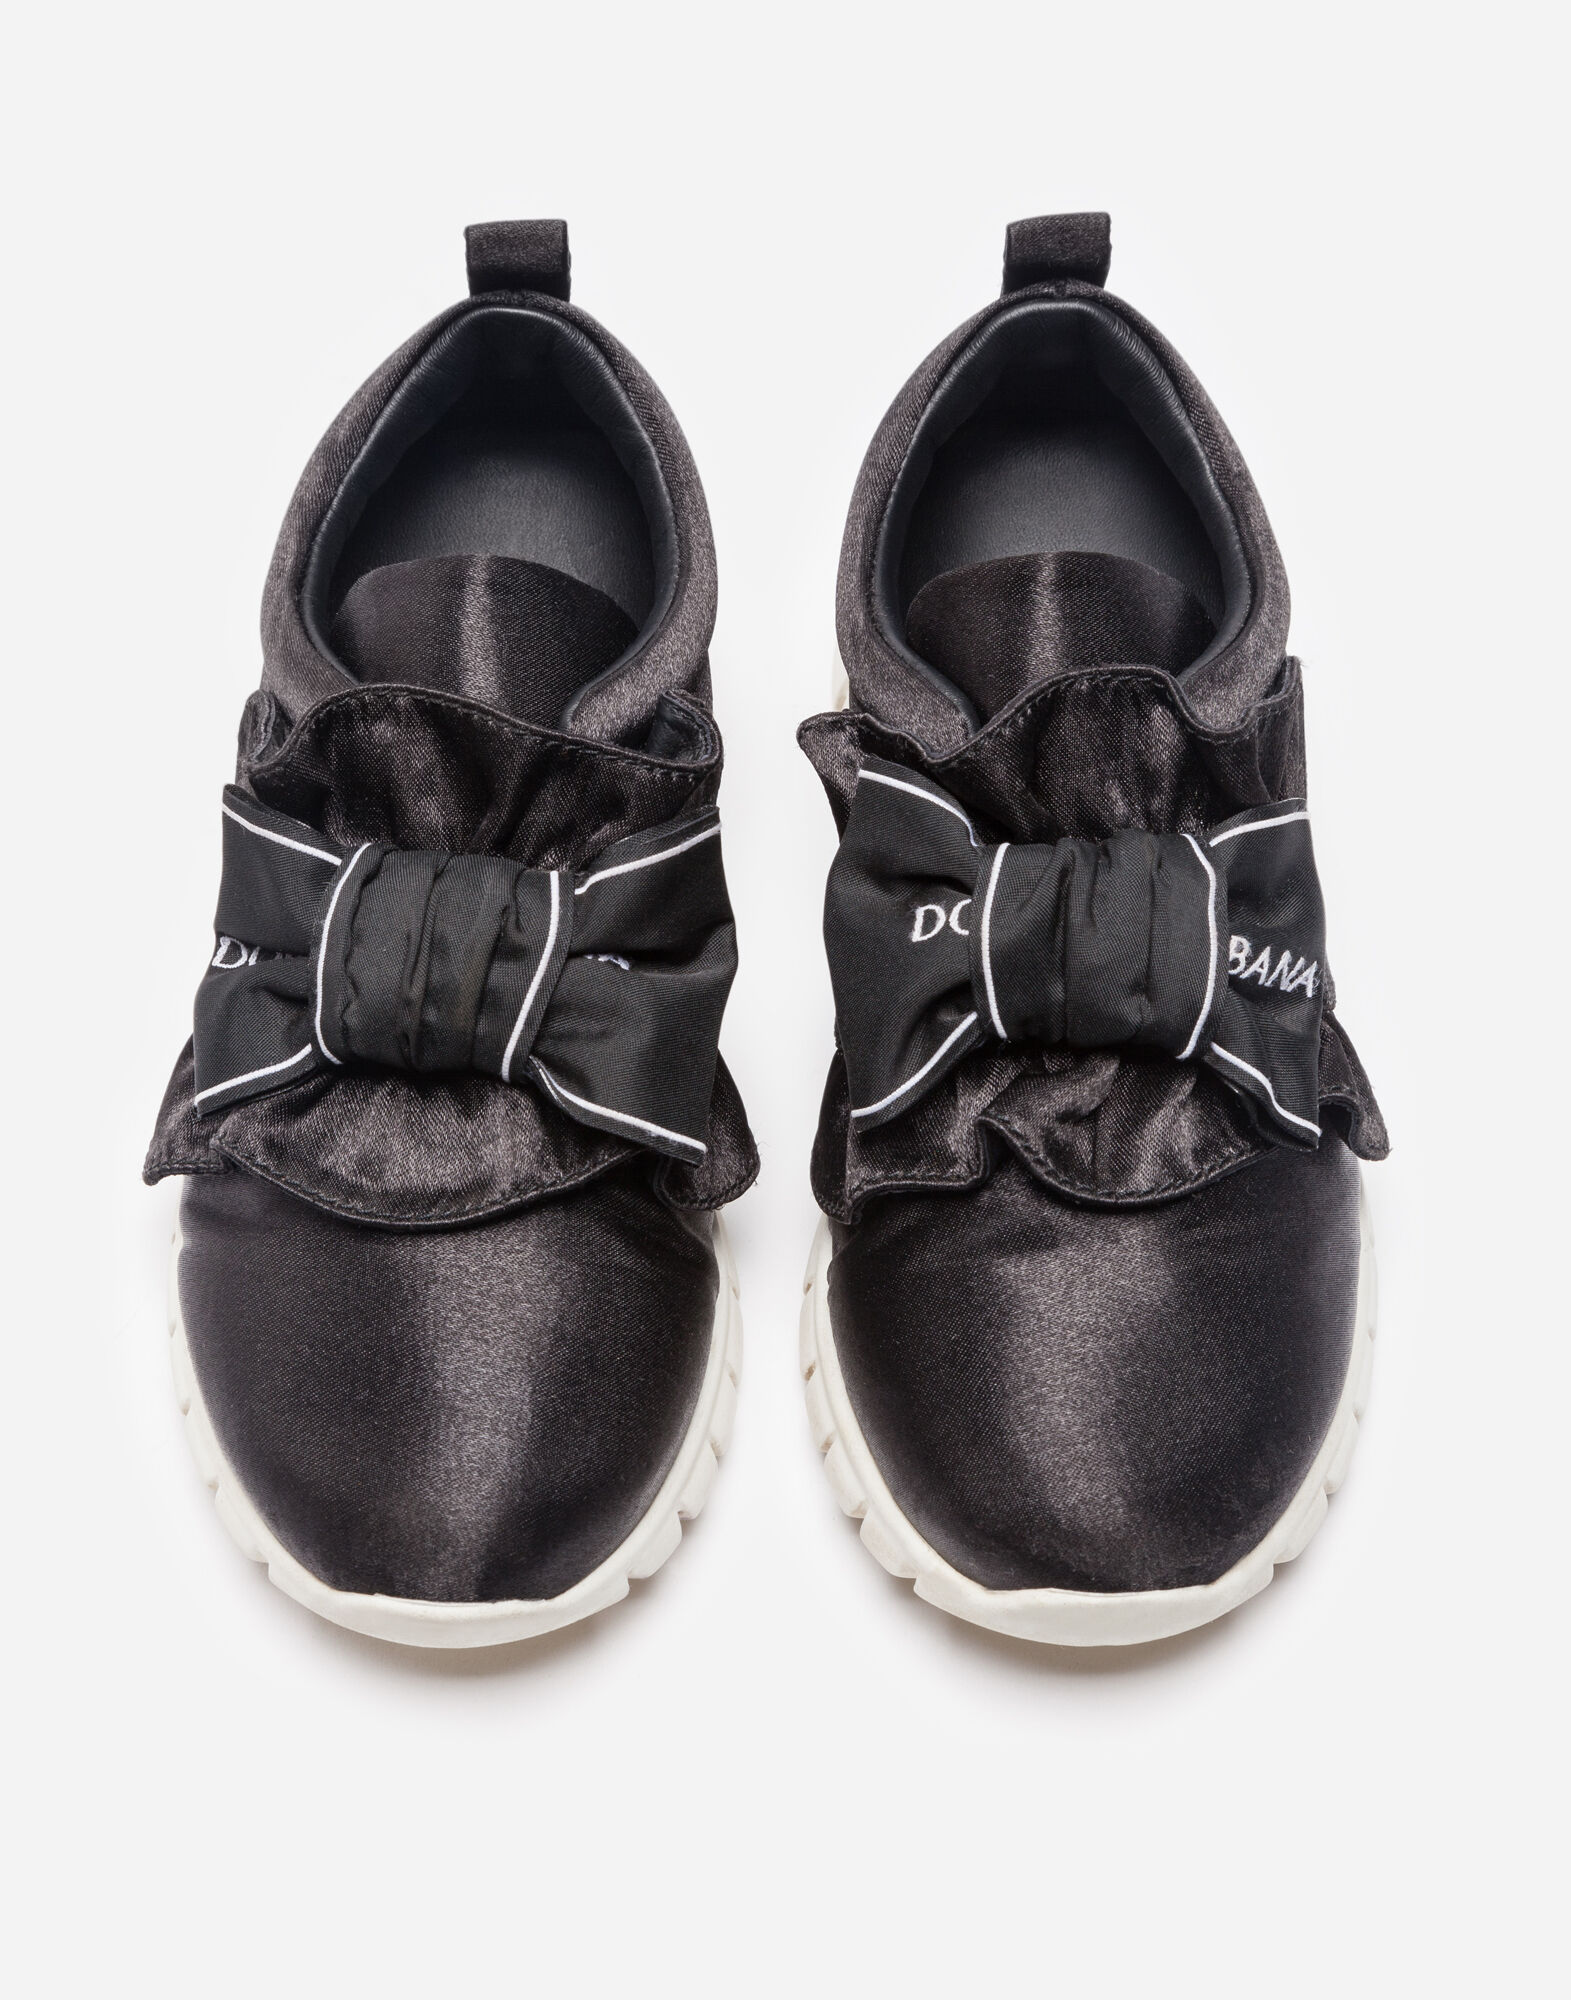 Dolce&Gabbana SATIN SNEAKERS WITH BOW